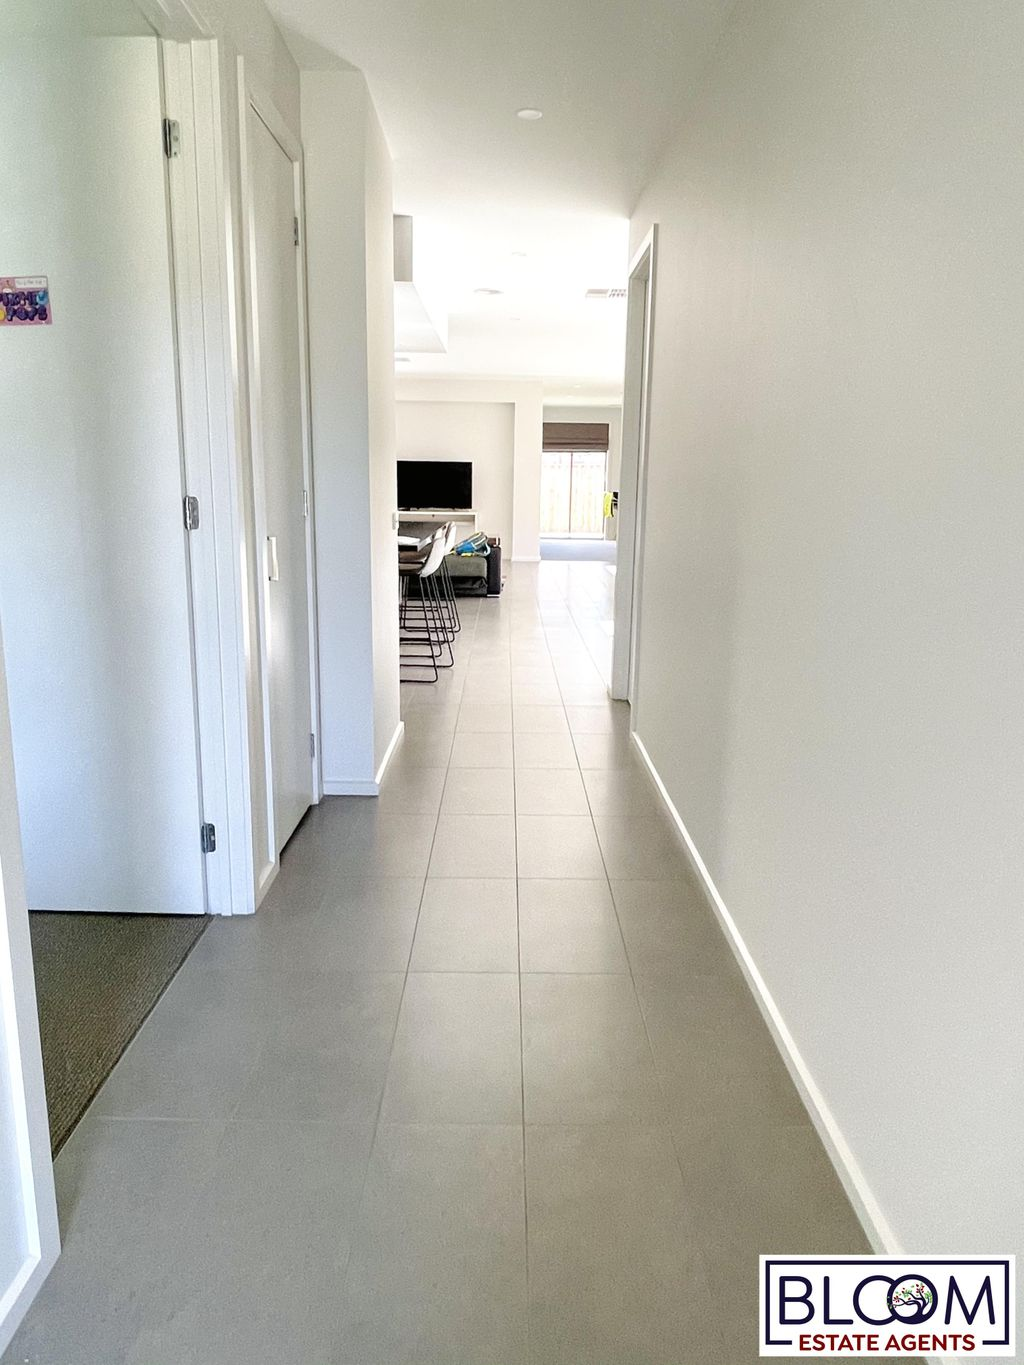 Unique modern House for rent in the heart of Truganina!